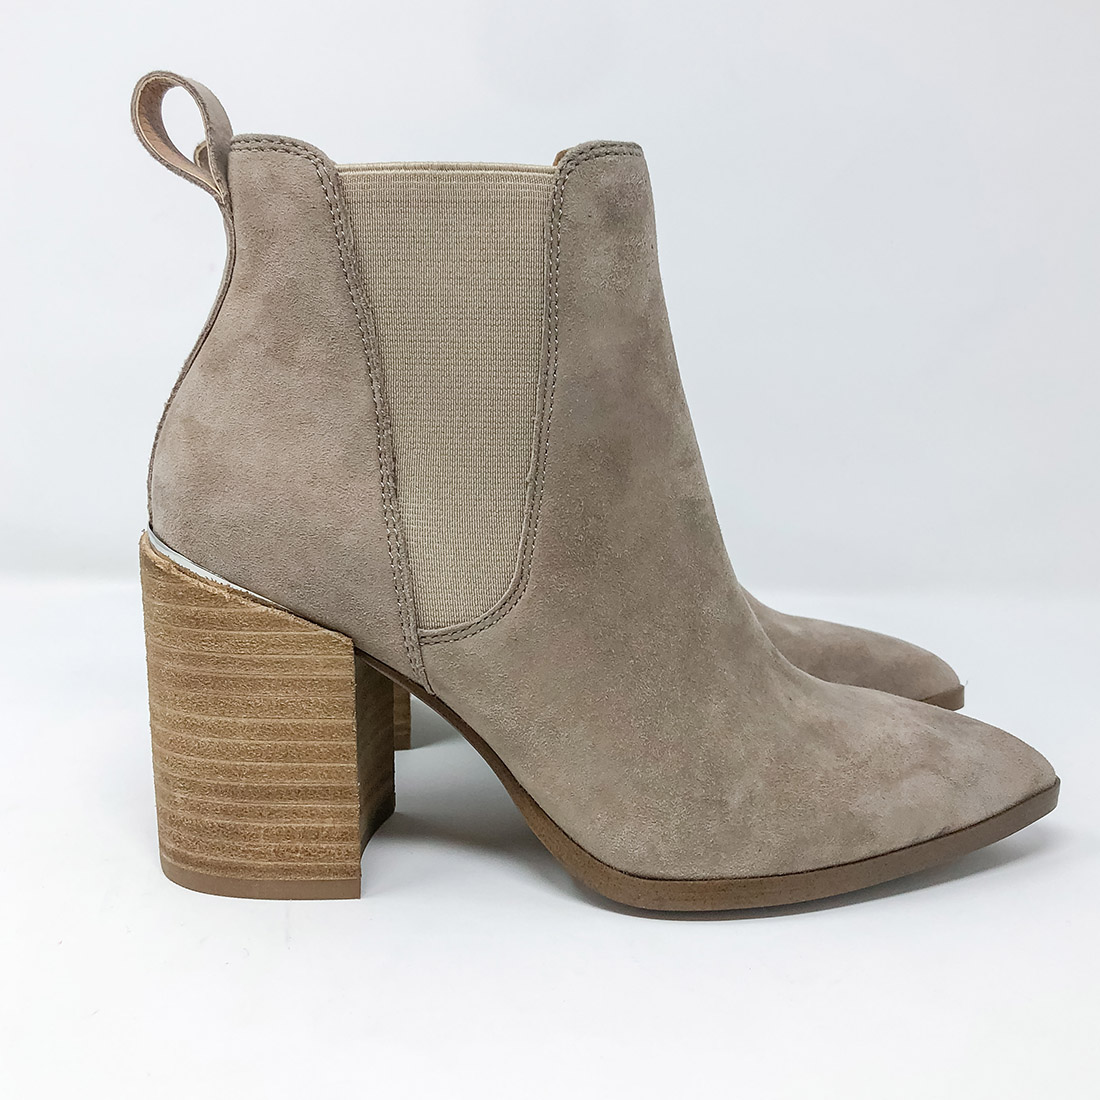 Steve Madden Knoxi Taupe Suede Bootie 73285